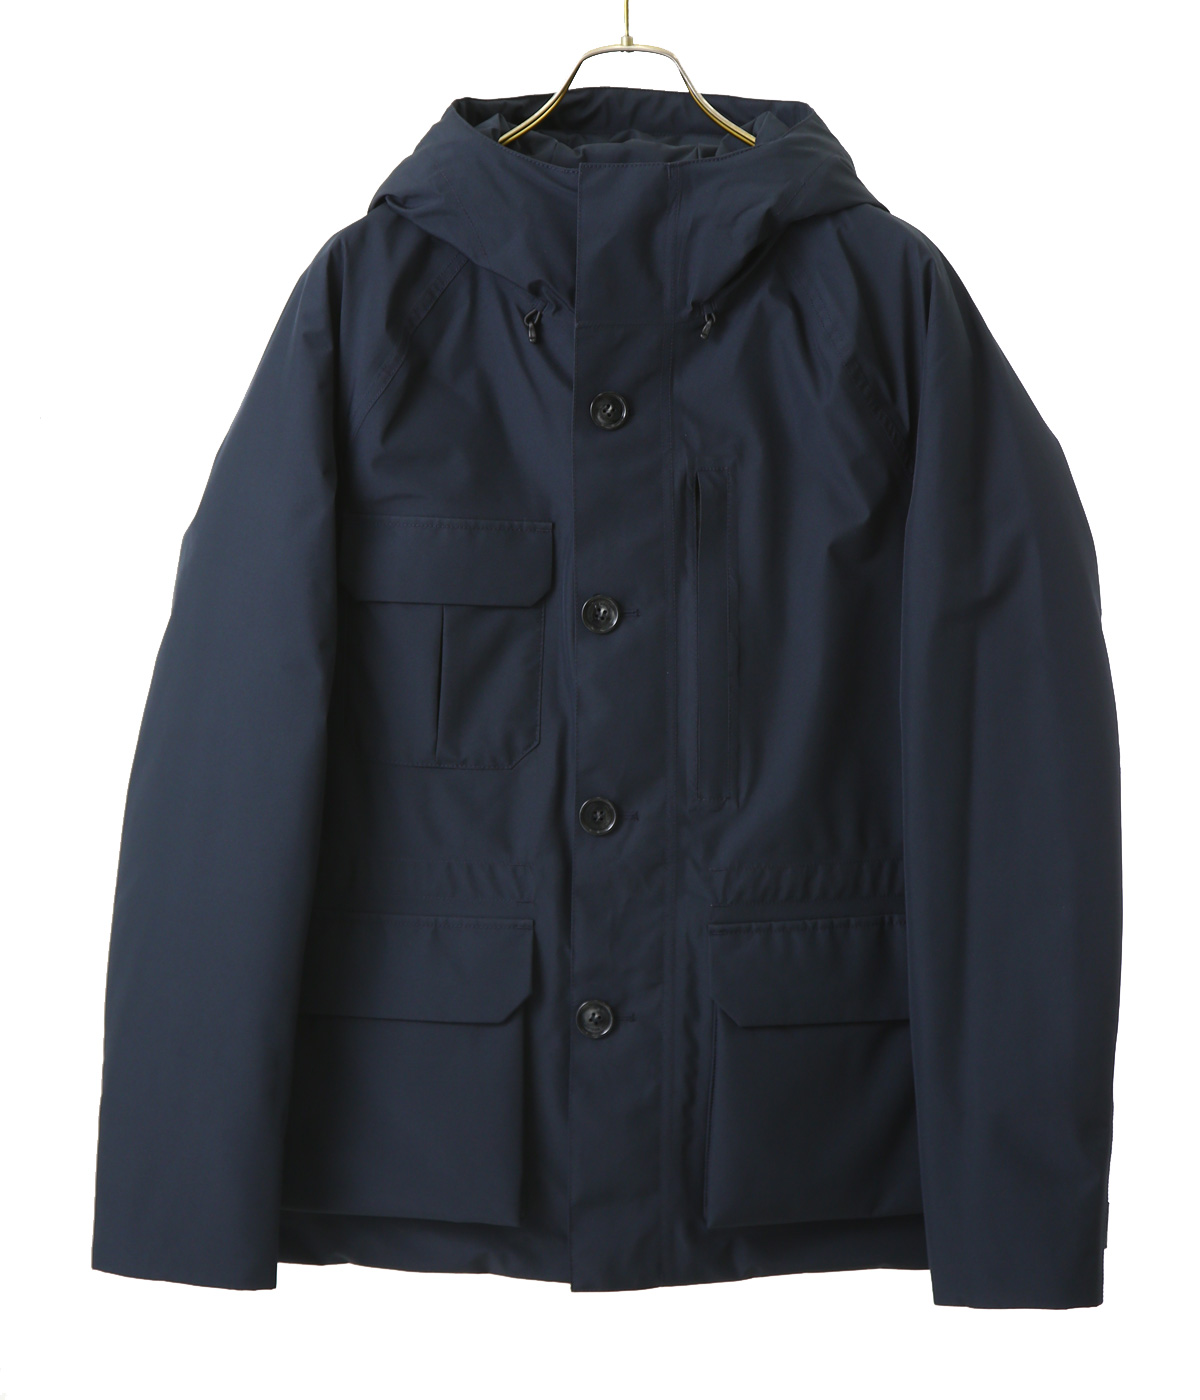 GTX MOUNTAIN JKT -NAVY MELTON-